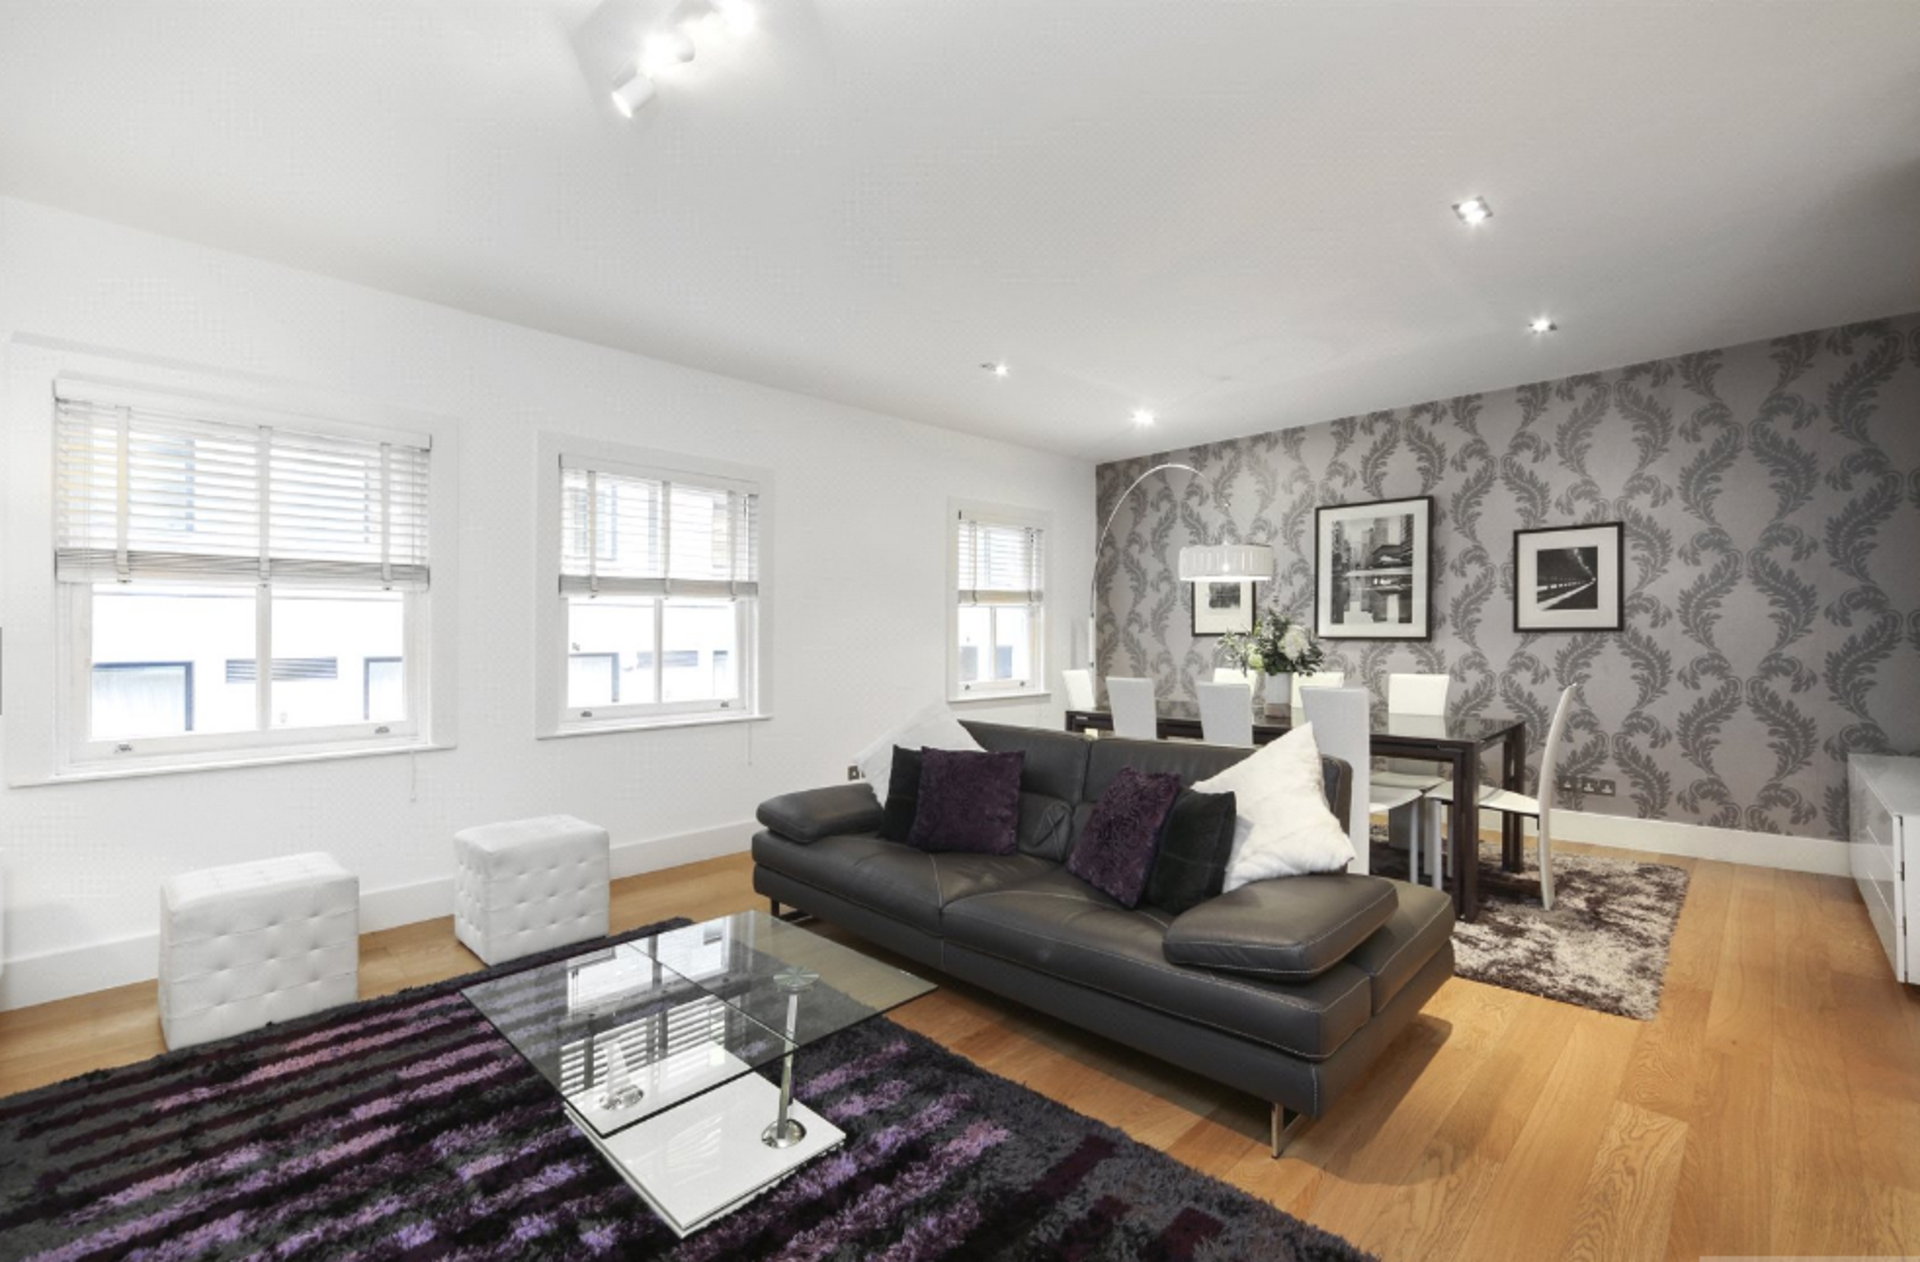 Fully AC 2-bed house in the heart of Marylebone